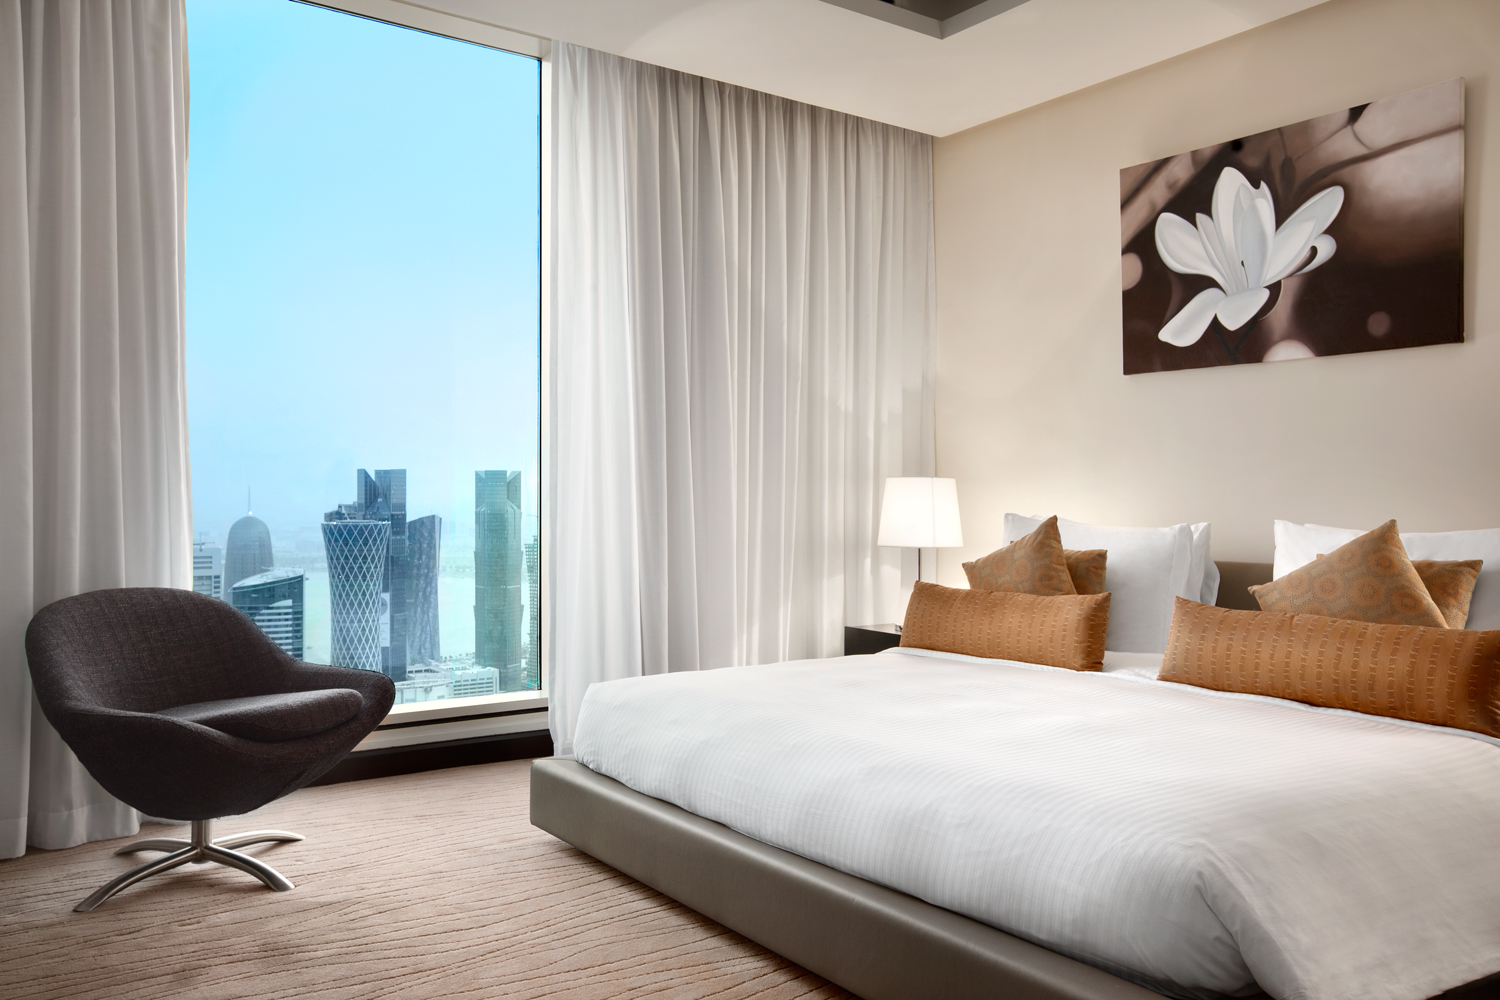 Three Bedroom Luxury Apartments in West Bay - Kempinski Residence and Suites